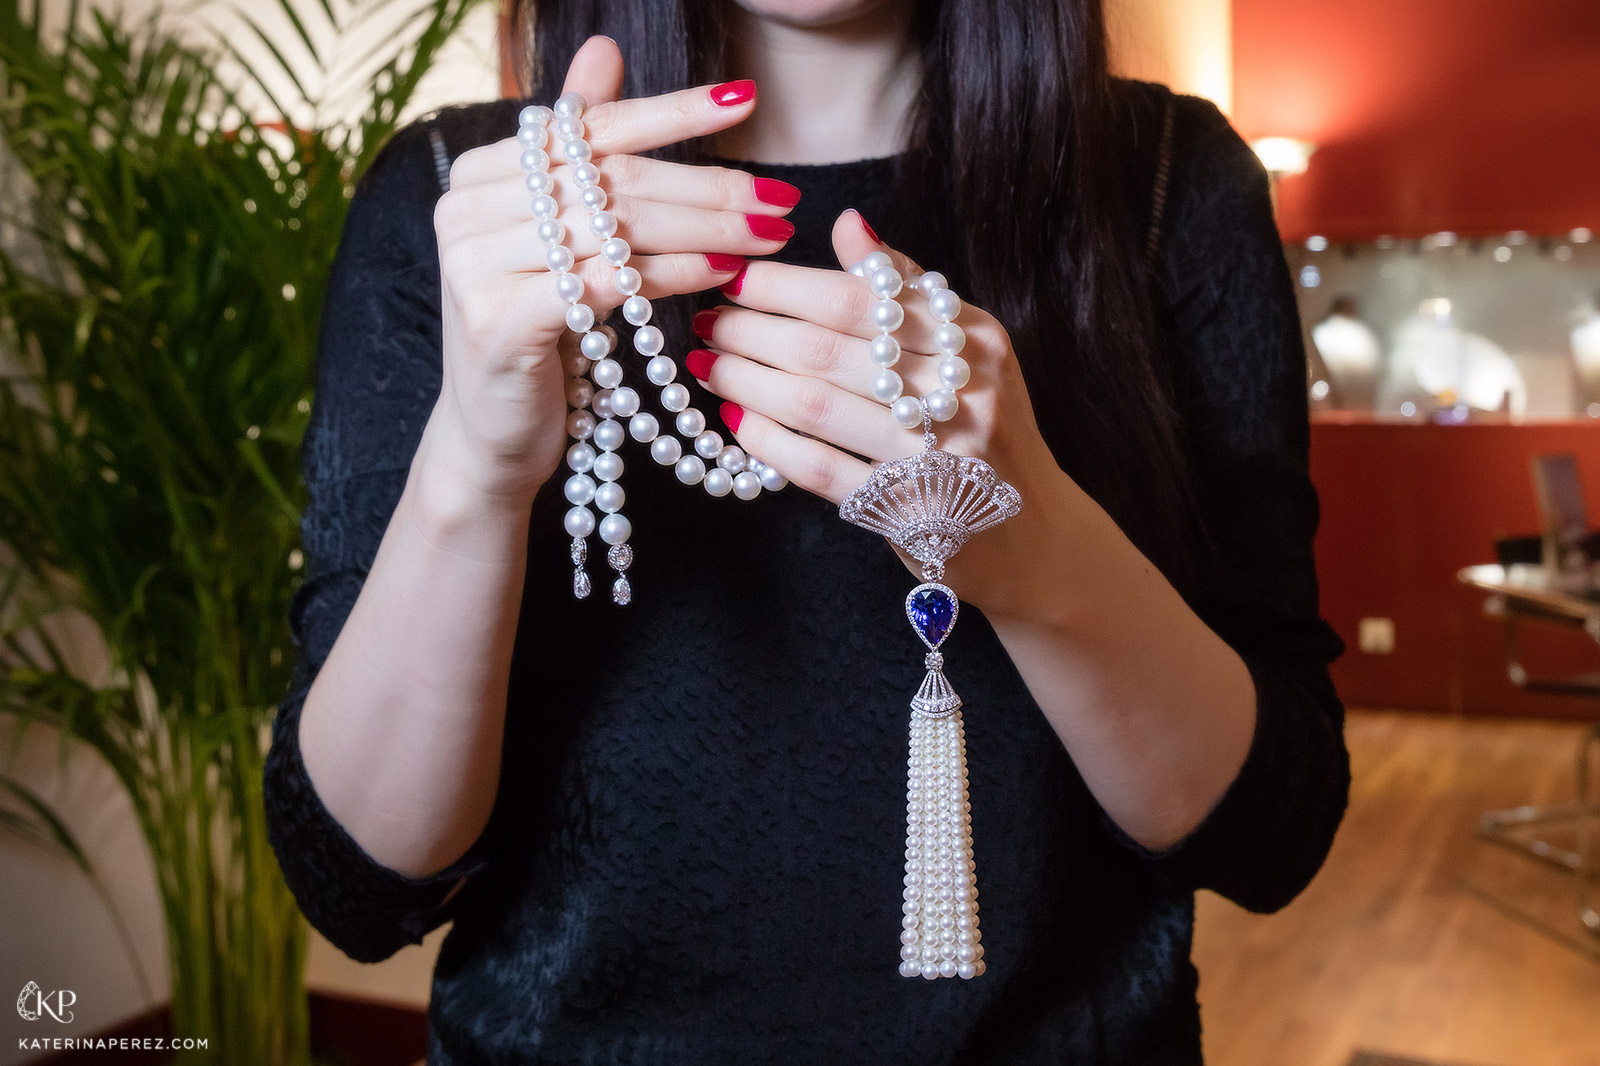 Adler necklace with a pear-shaped tanzanite, pearls and diamonds. Photo by Simon Martner